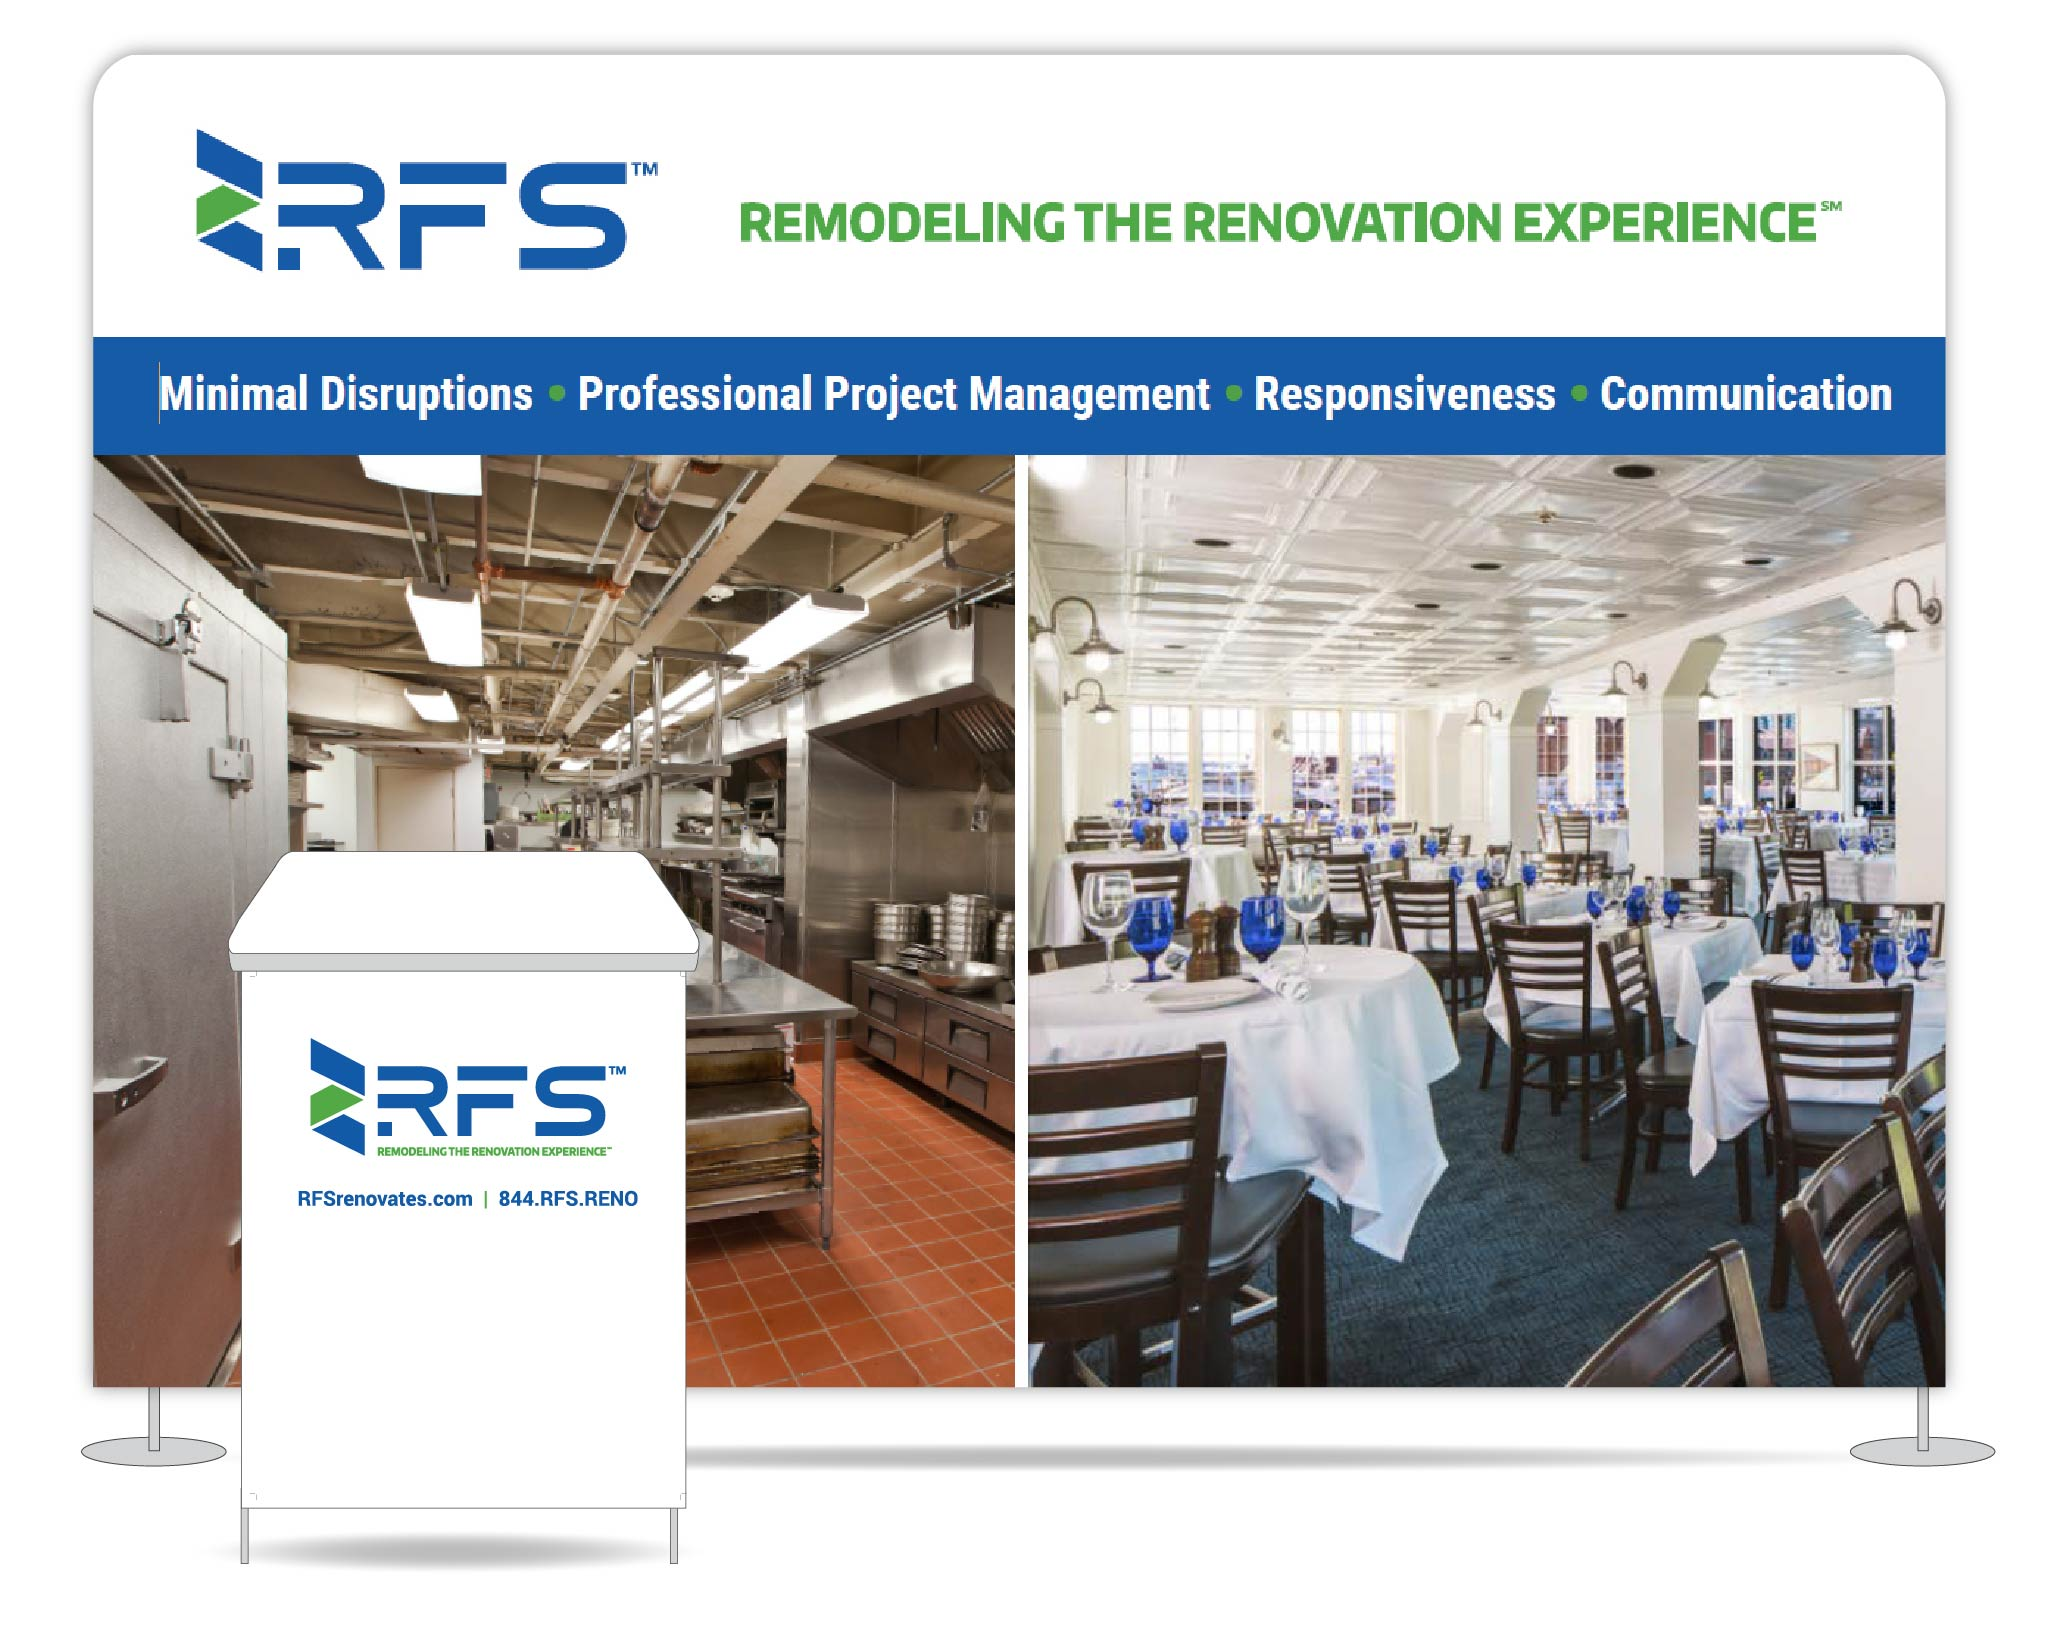 RFS trade show booth graphic